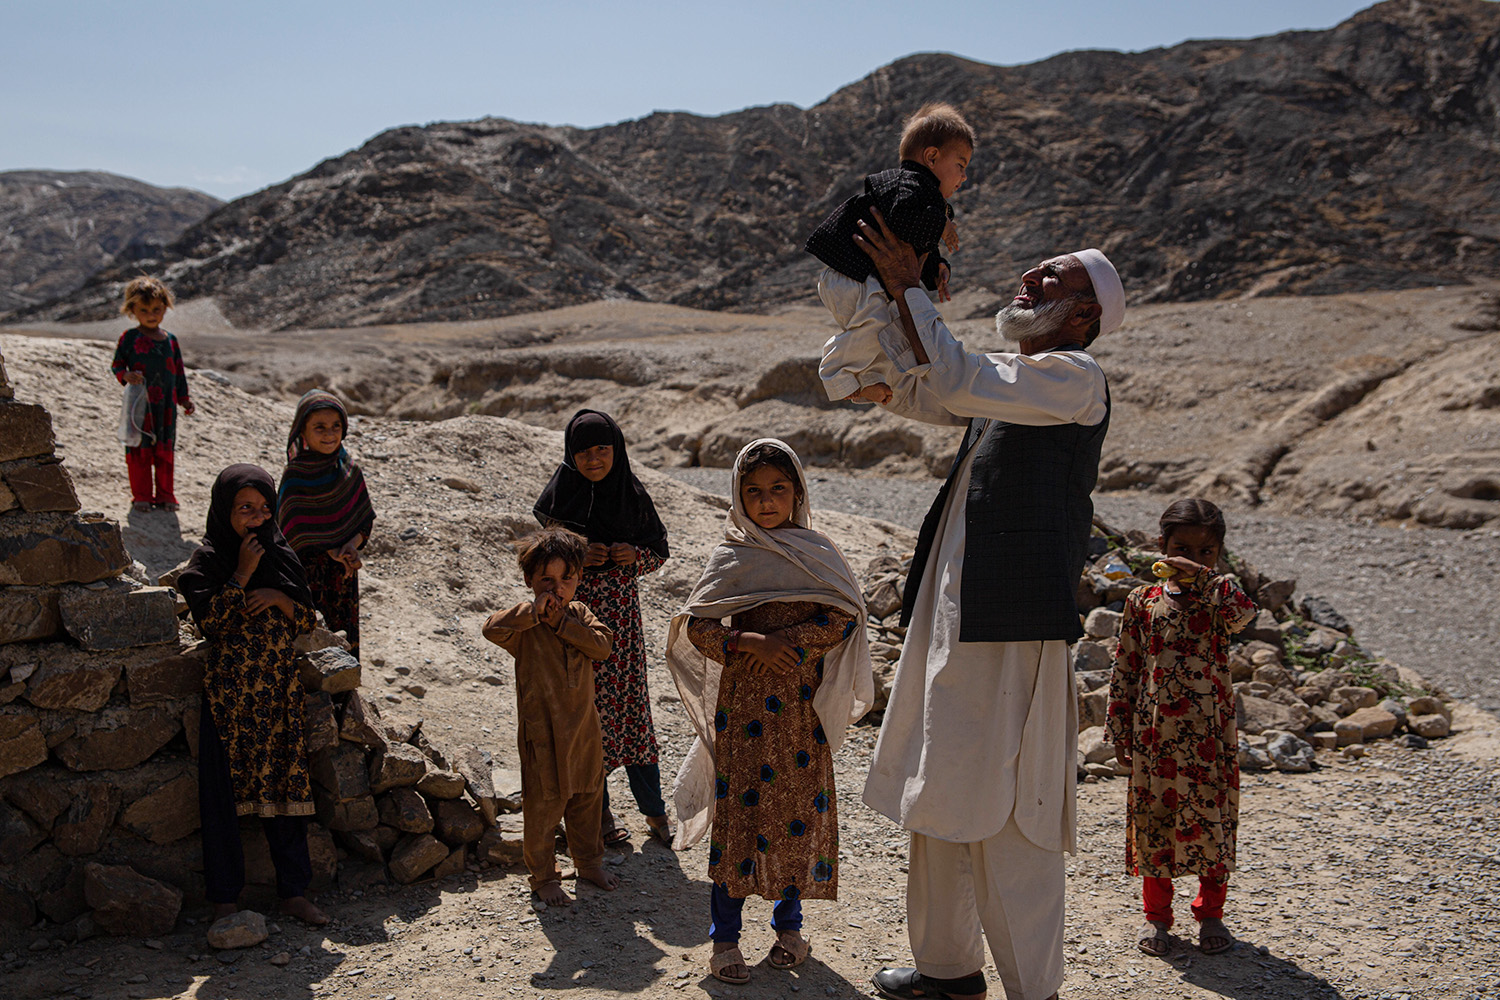 Villagers in Nangarhar's Momand Dara district on Sept. 19. The rural-urban divide in Afghanistan has caused widespread frustration with people in rural areas saying they lack access to services such as education and health care.